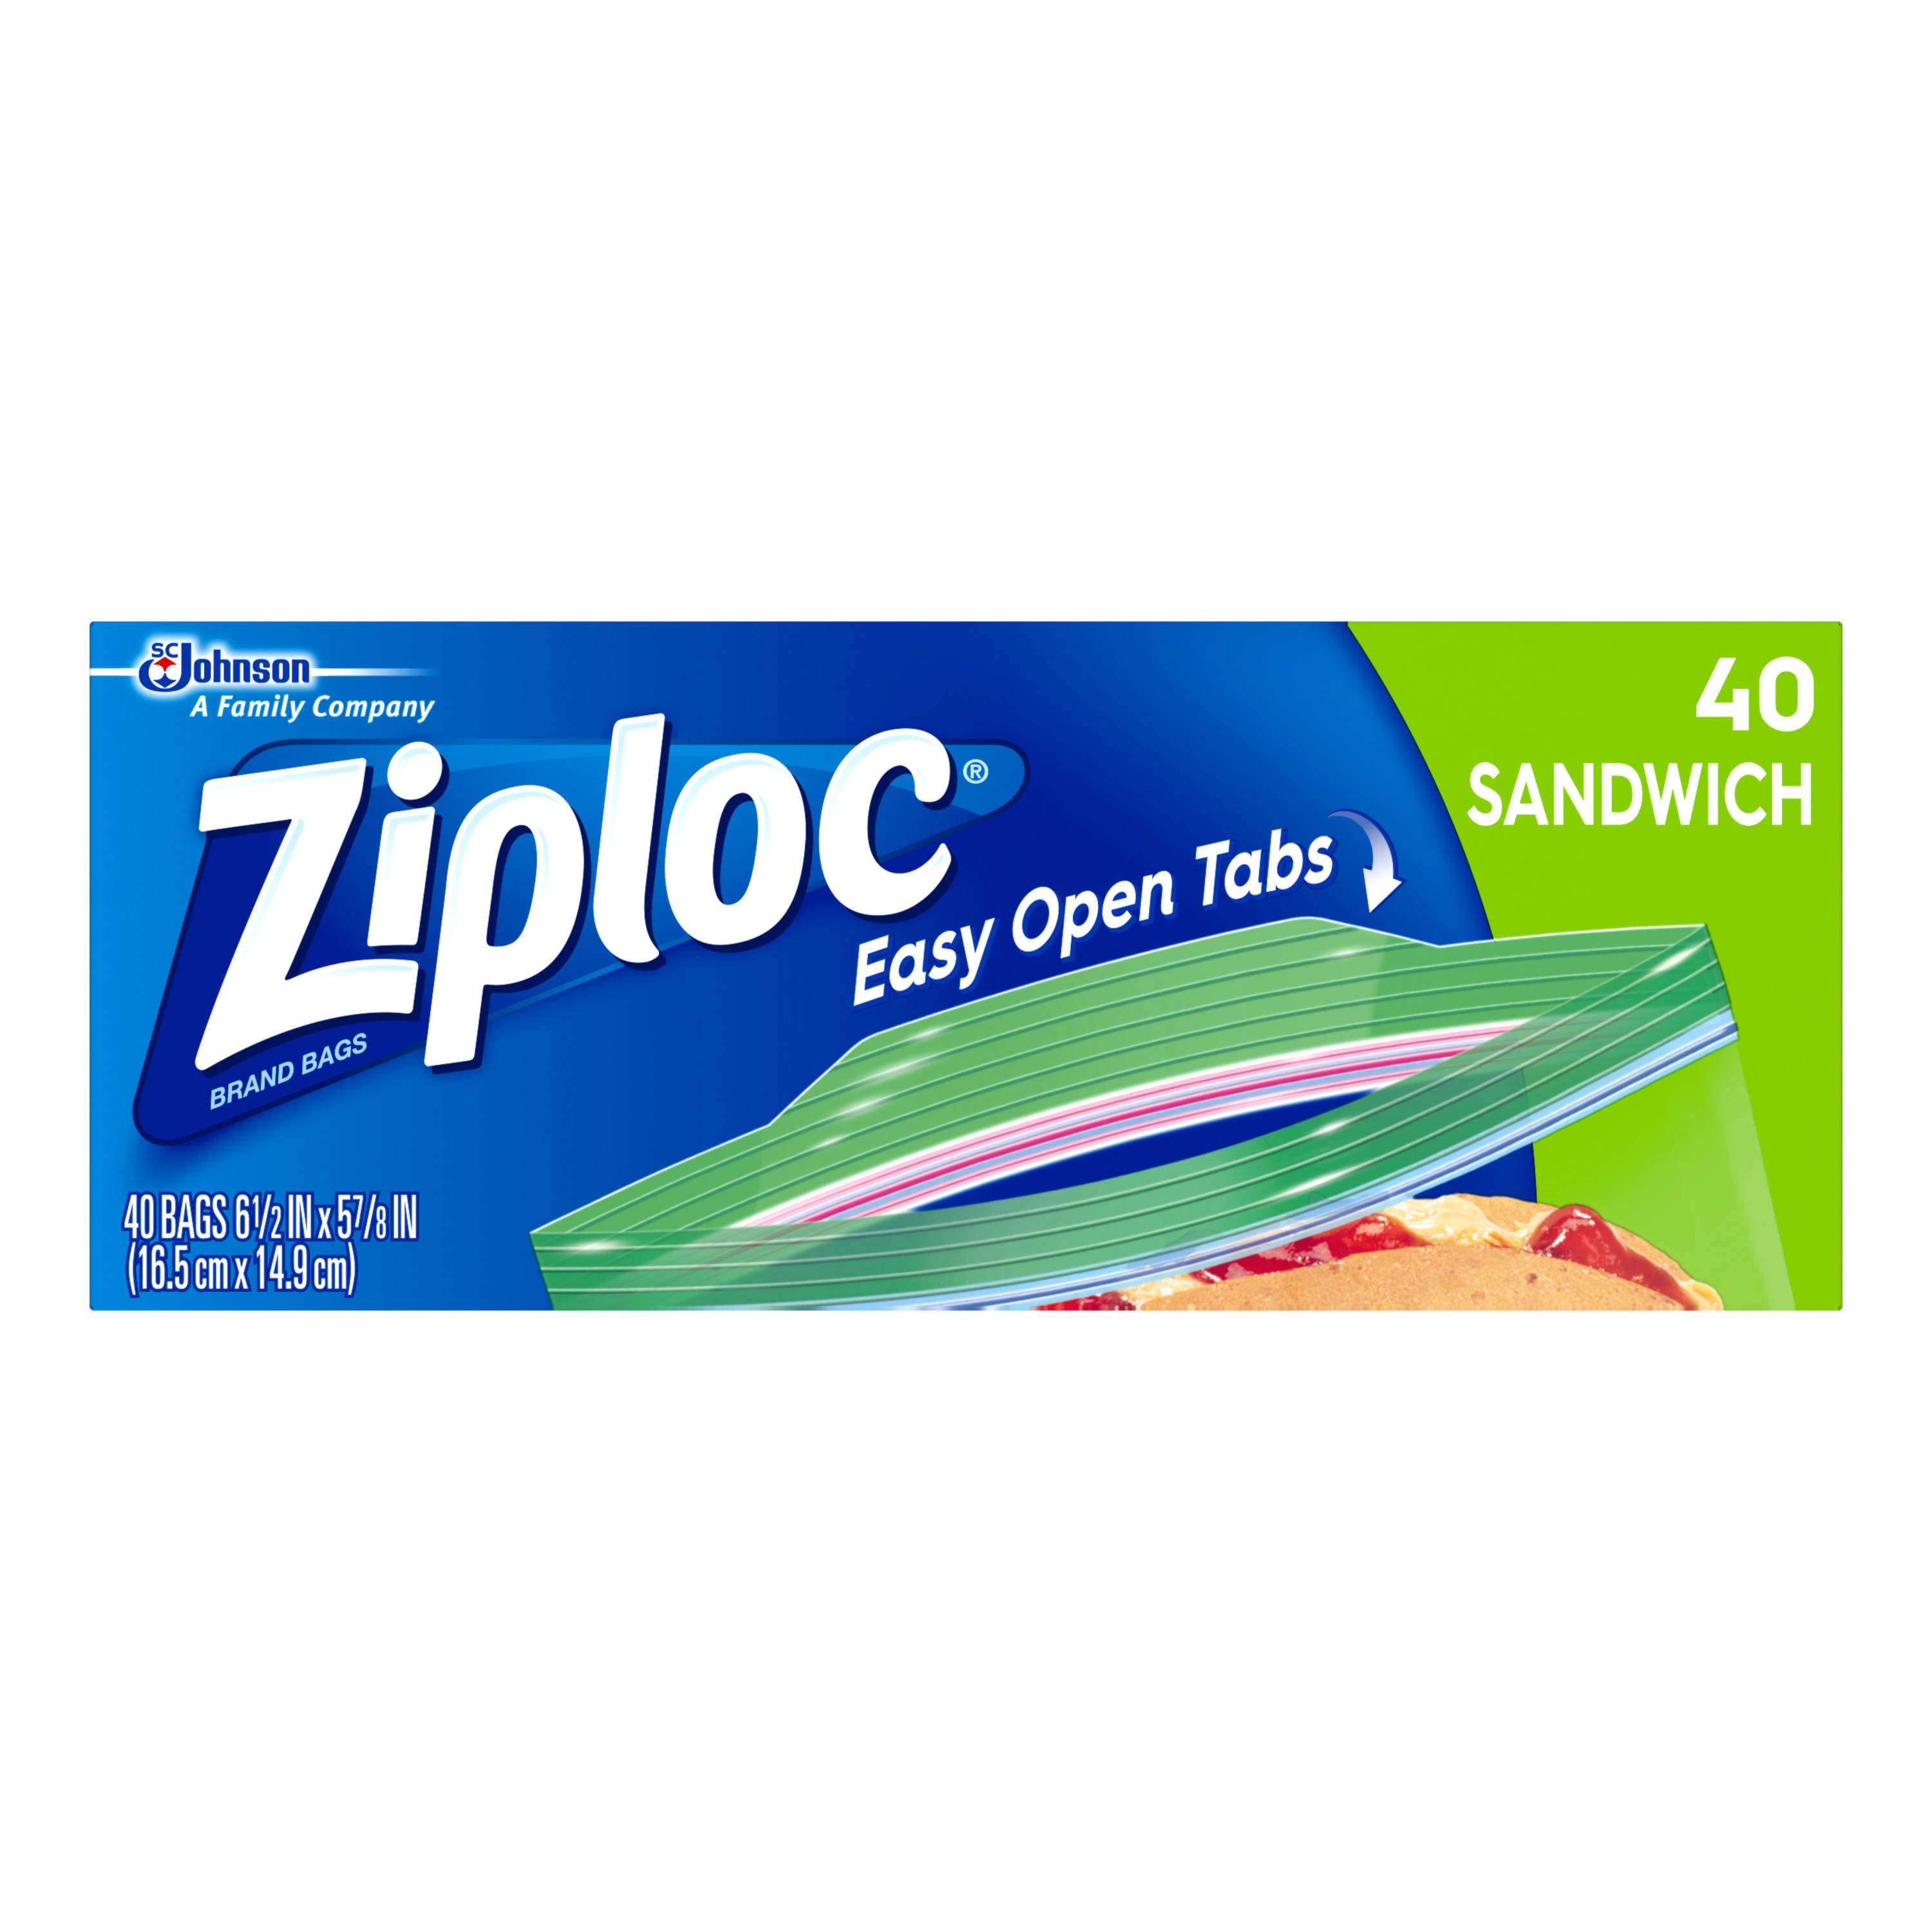 SC Johnson Ziploc Sandwich Bags - 40ct